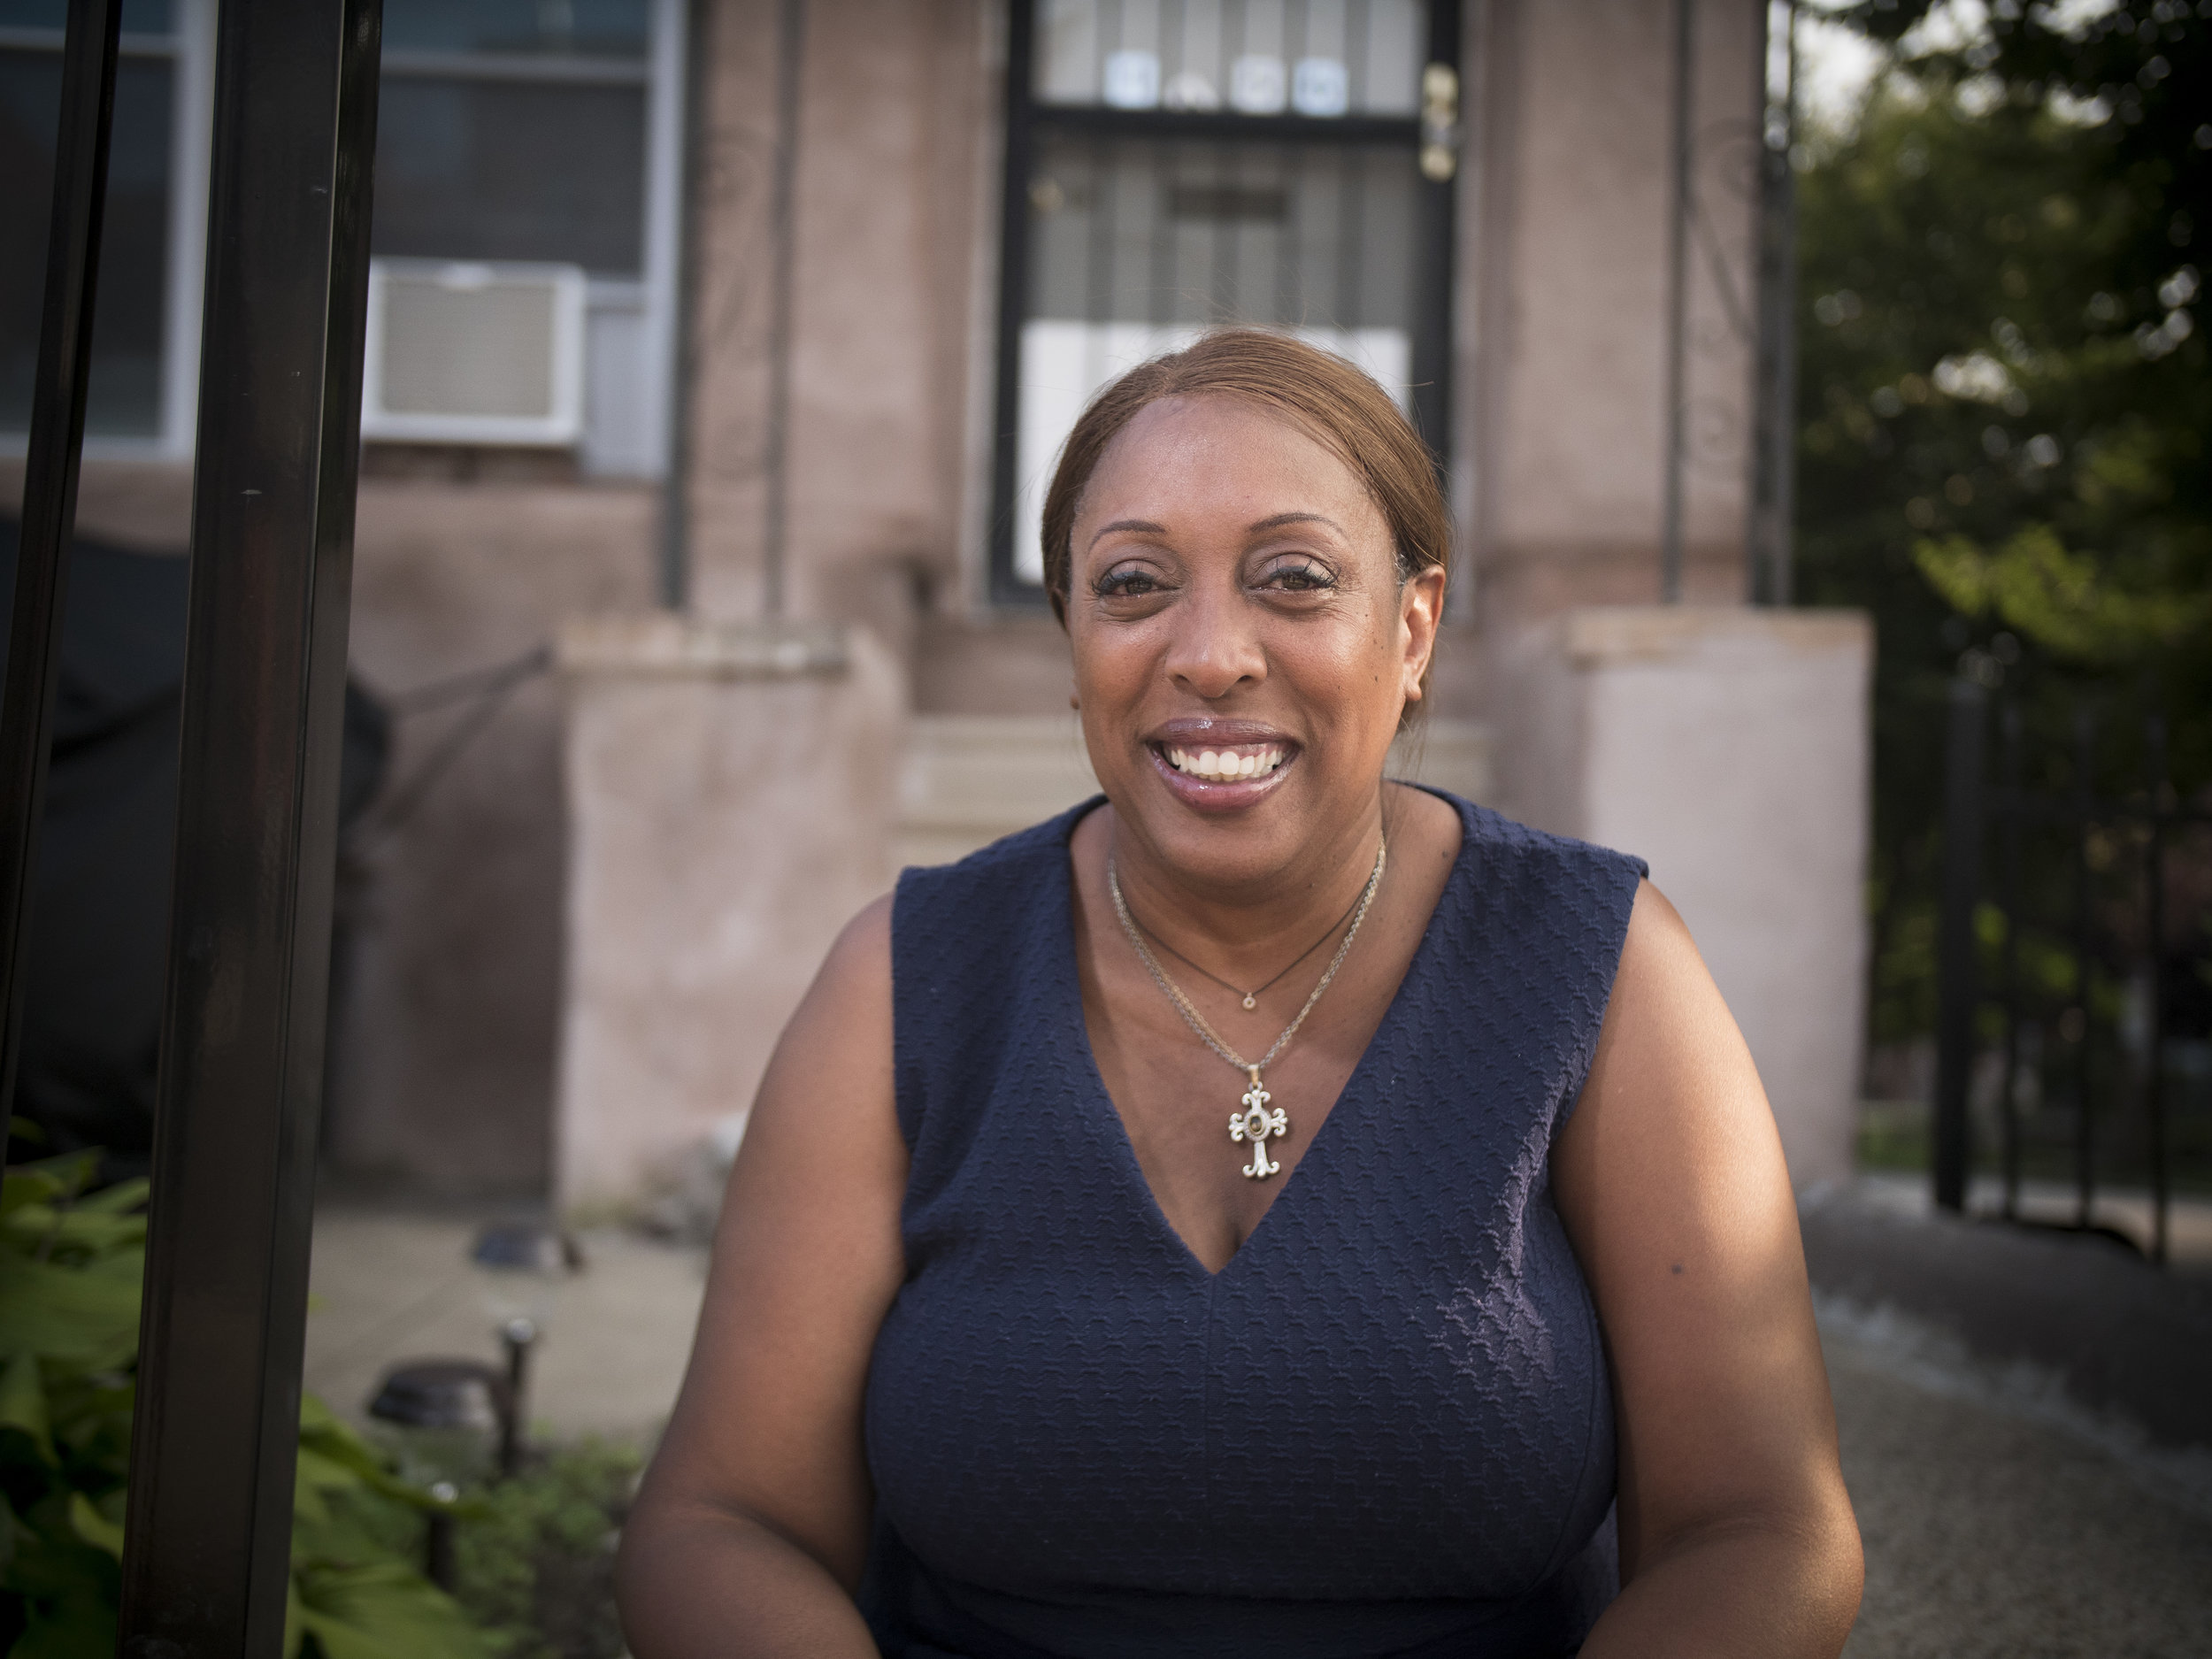 About - Meet Tonya Bah, her story, her community,her mission and her passion for Philadelphia and the people in it.